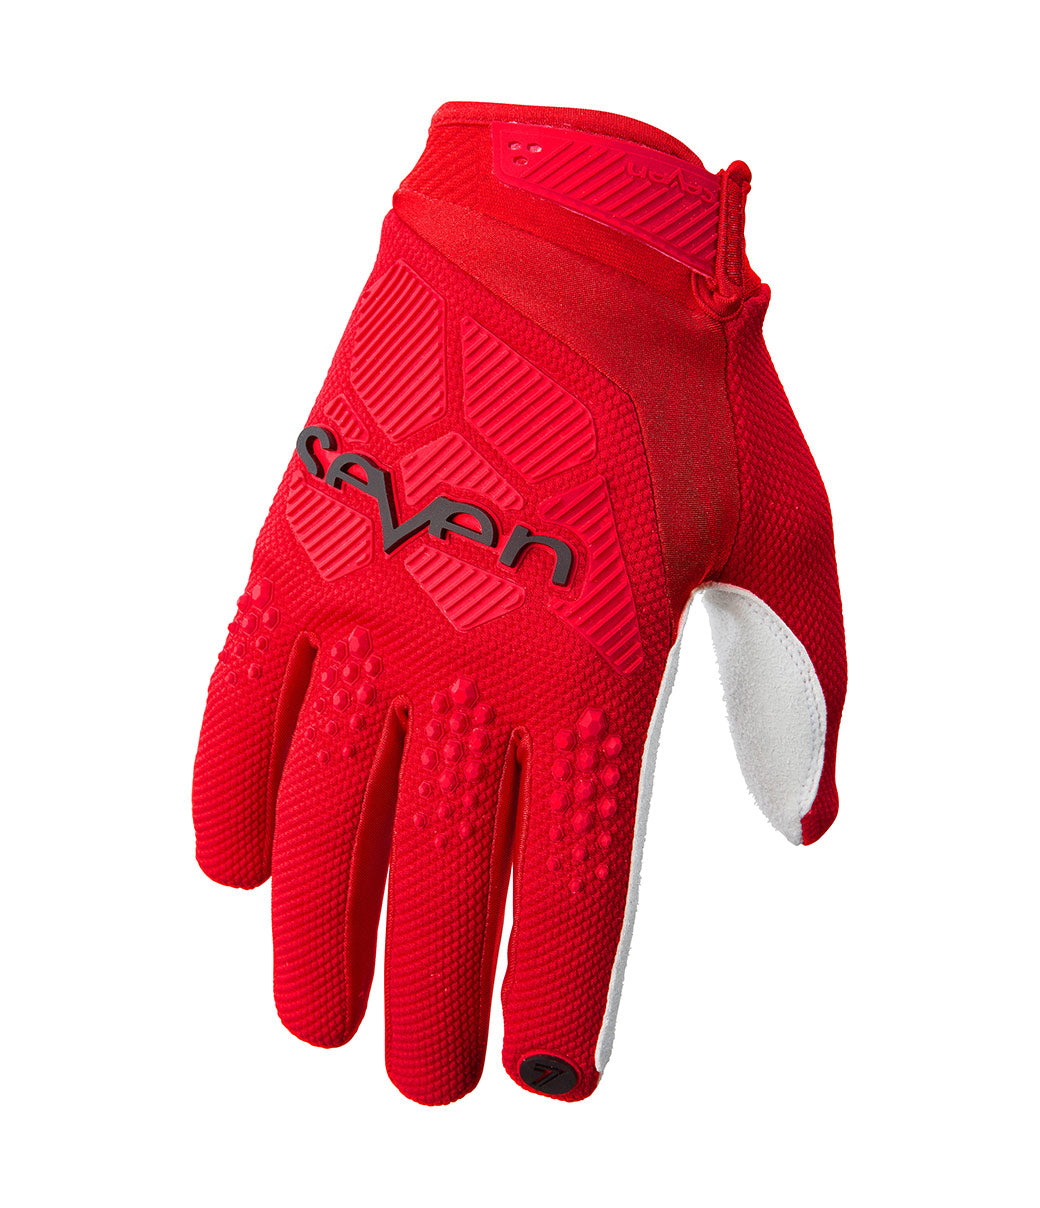 Rival Gloves - Red